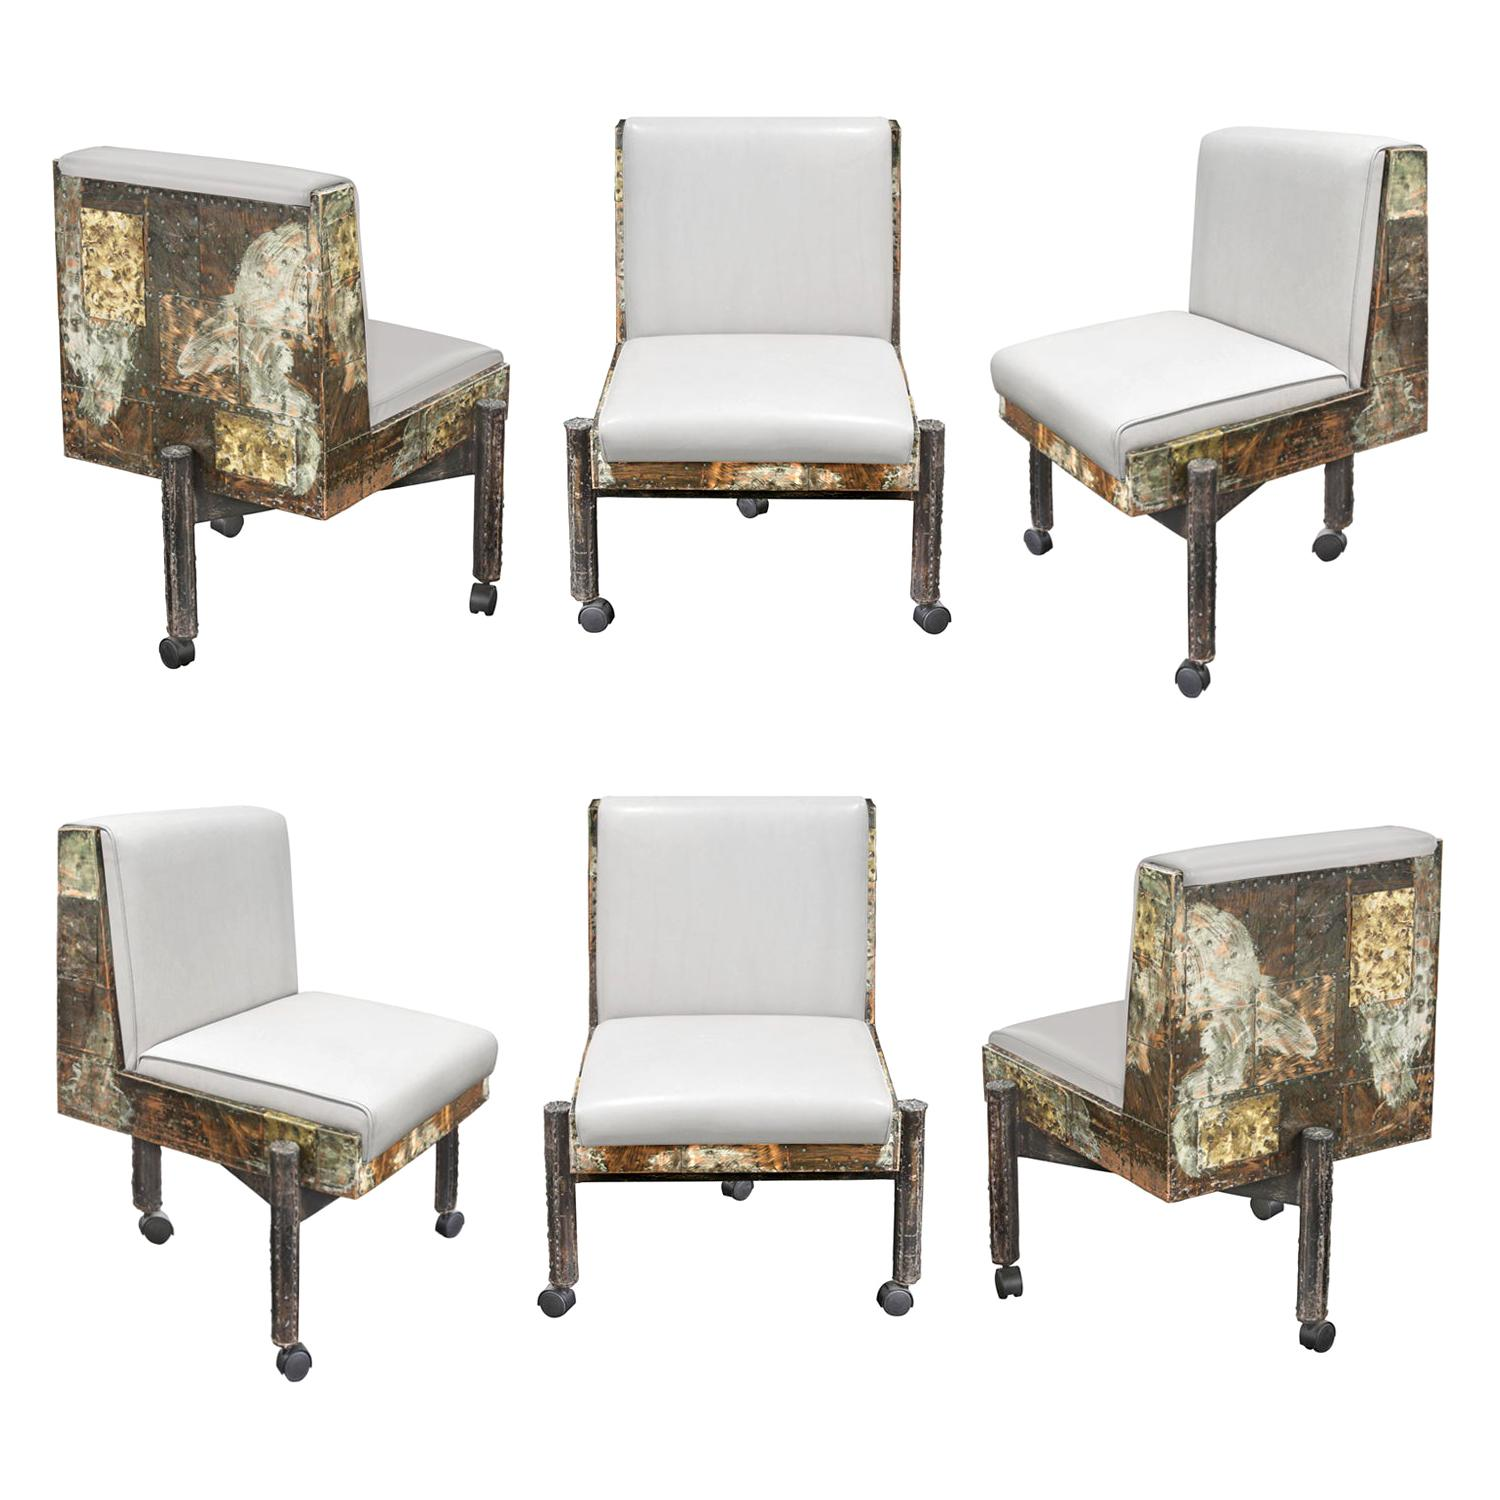 Paul Evans Set of 6 Rare and Exceptional Patchwork Dining Chairs 1967 'Signed'